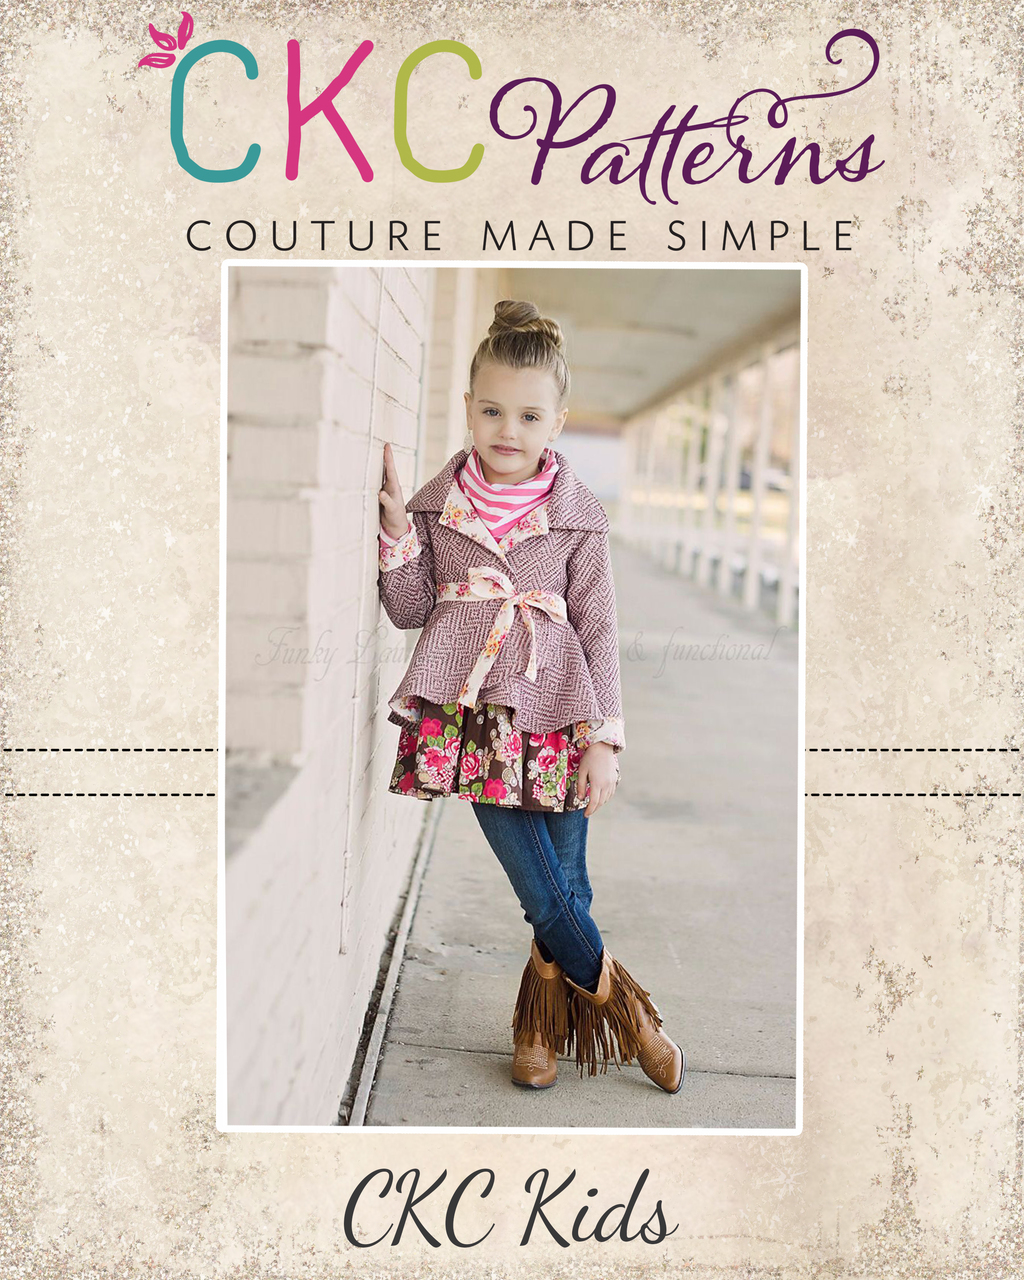 Bristol's Reversible High-Low Jacket Sizes 6/12m to 14 Kids and Dolls PDF Pattern